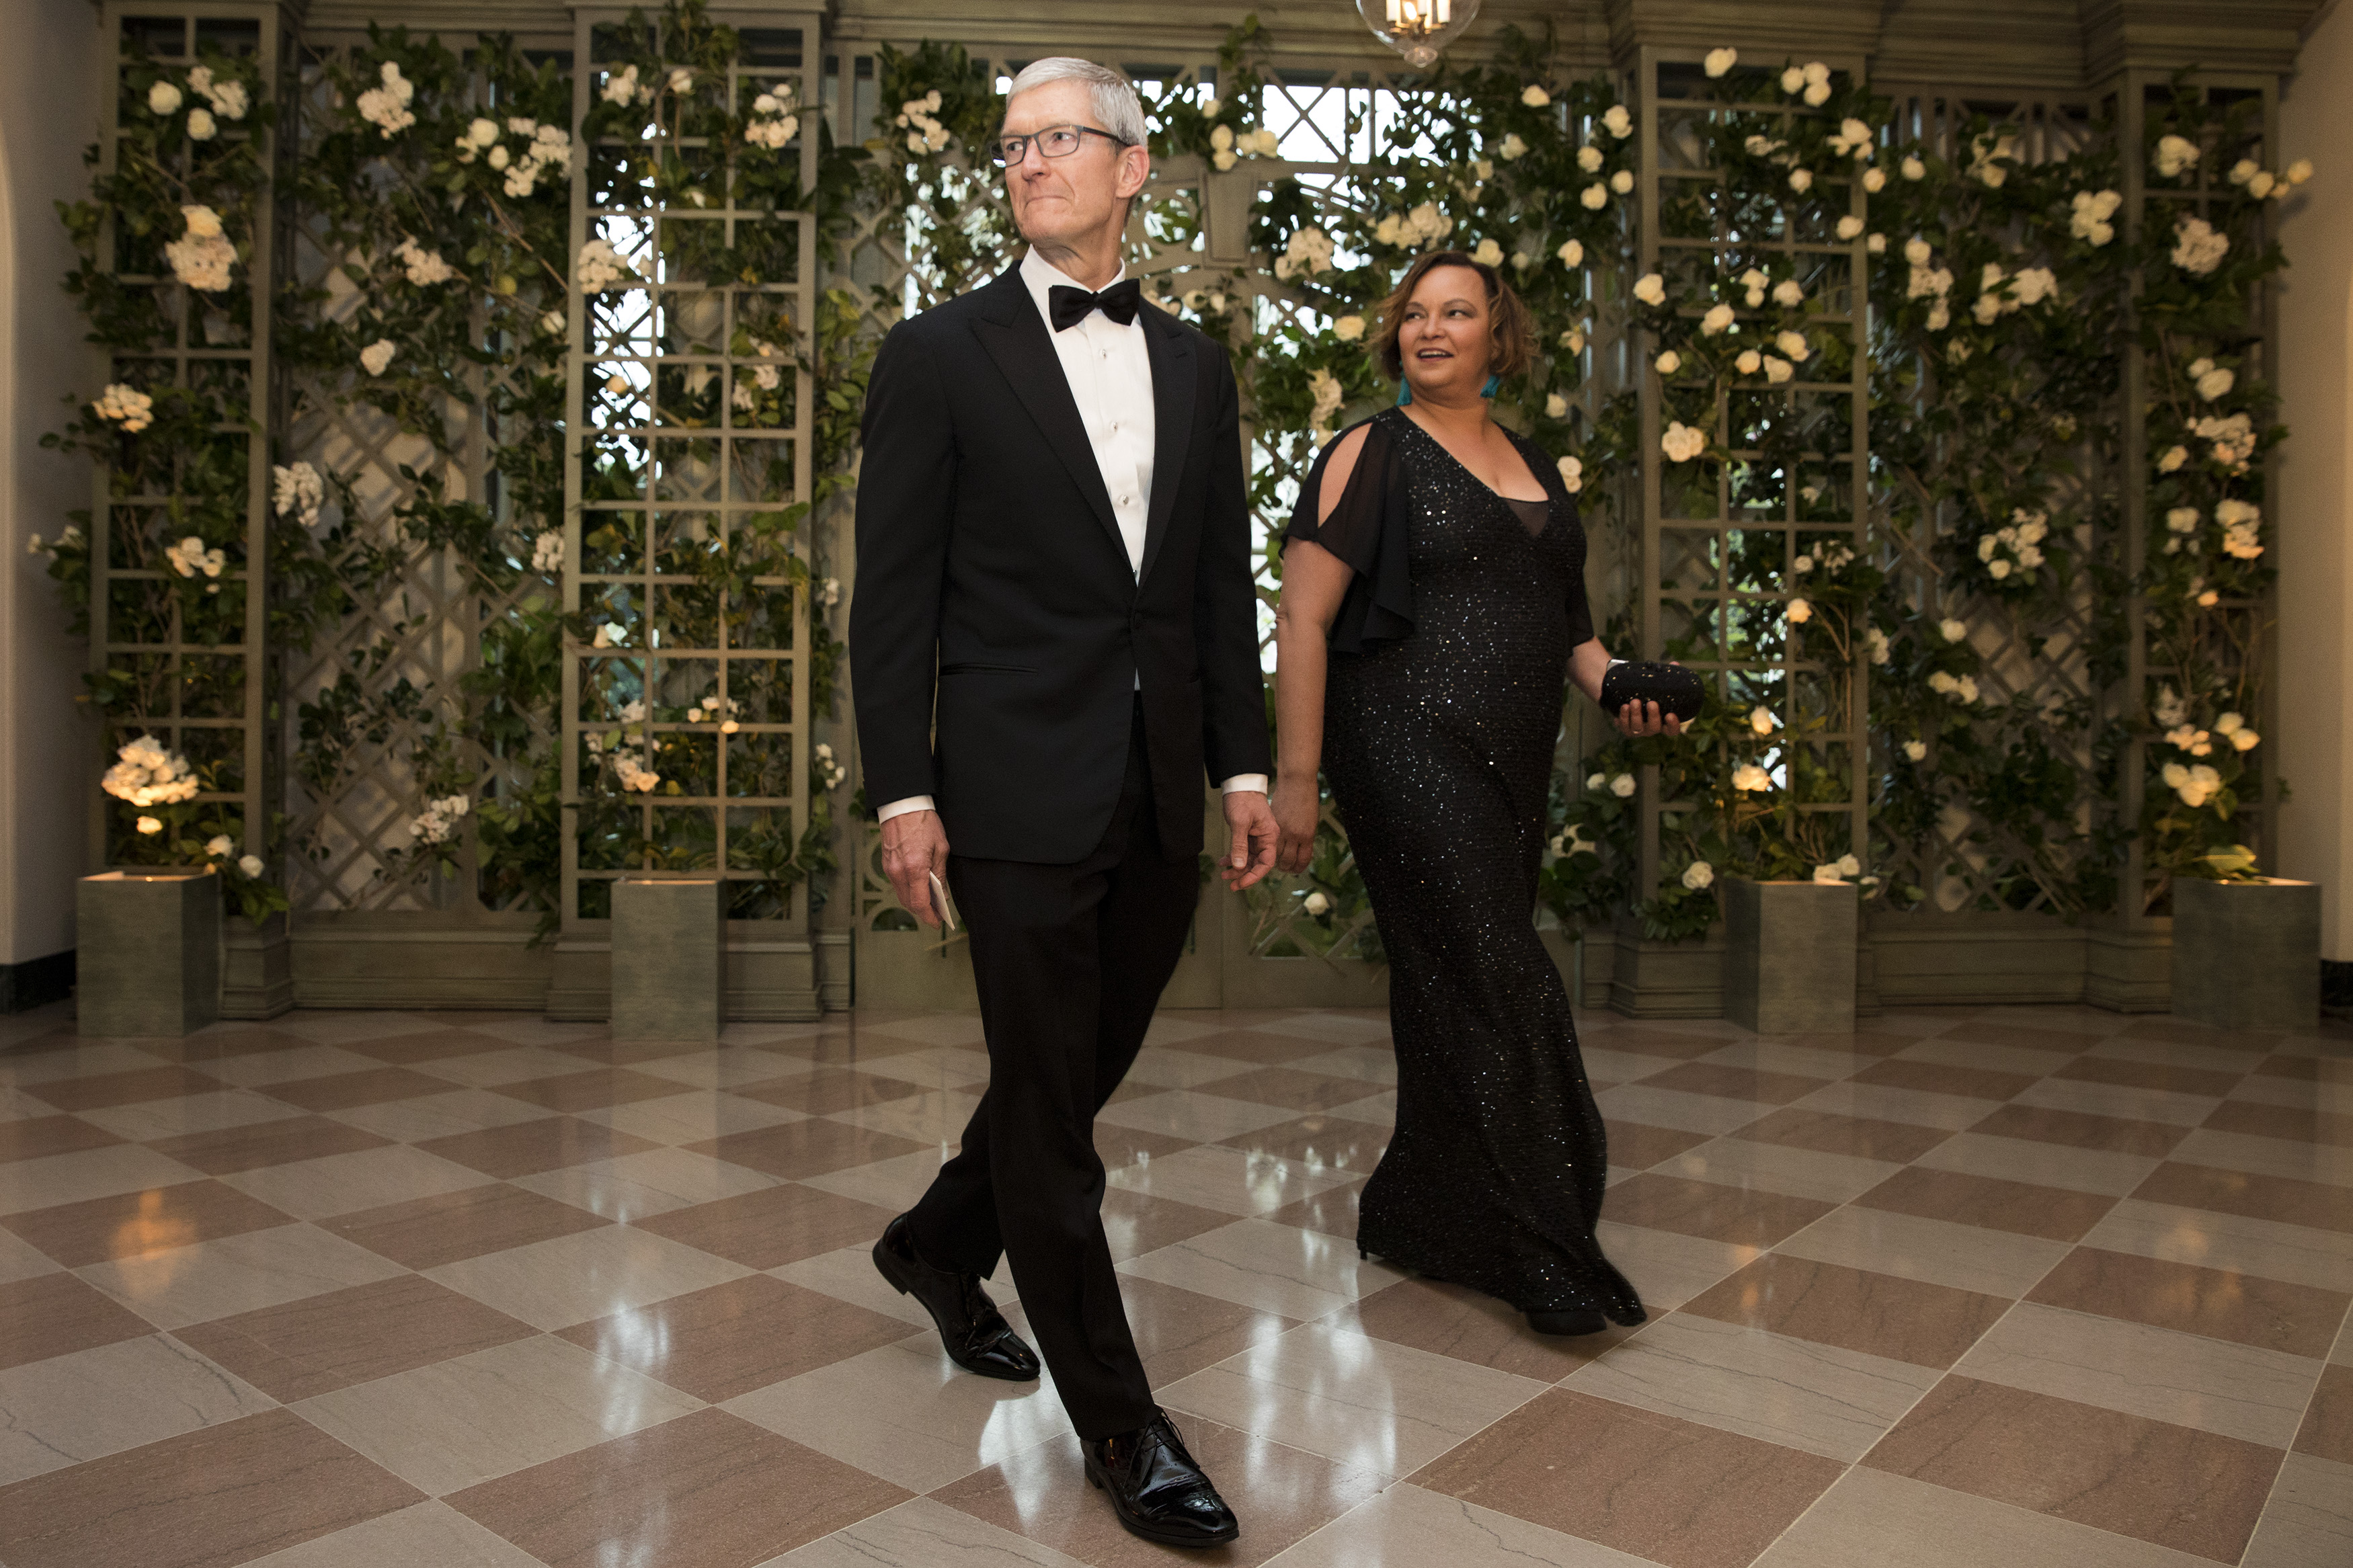 WASHINGTON, DC - APRIL 24: Apple CEO Tim Cook and Lisa Jackson arrive at the White House for a state dinner April 24, 2018 in Washington, DC. (Photo by Aaron P. Bernstein/Getty Images)